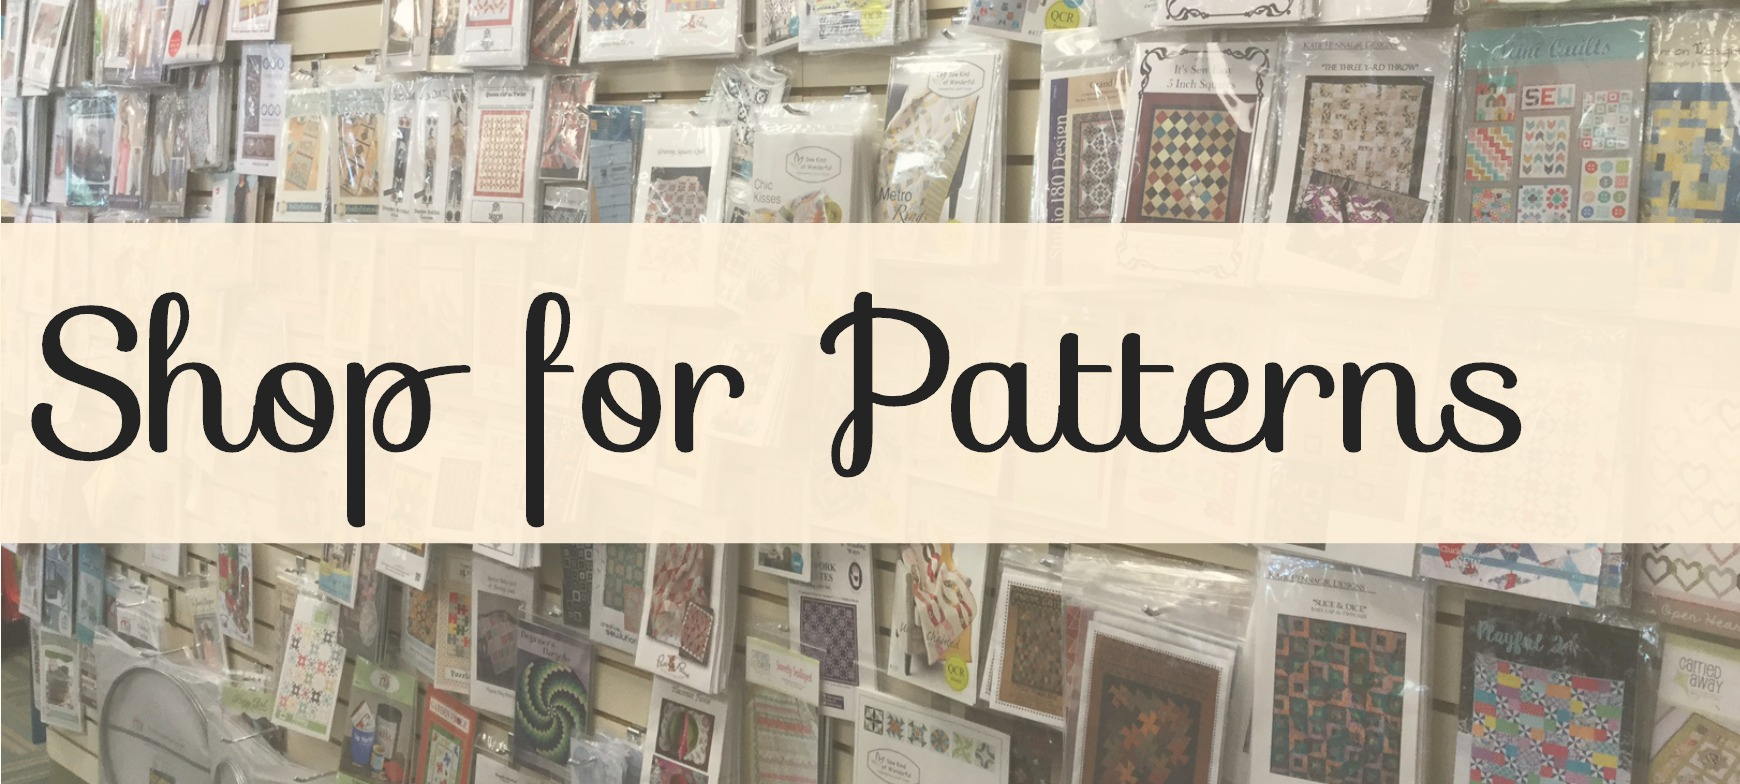 Shop for Patterns banner.jpg